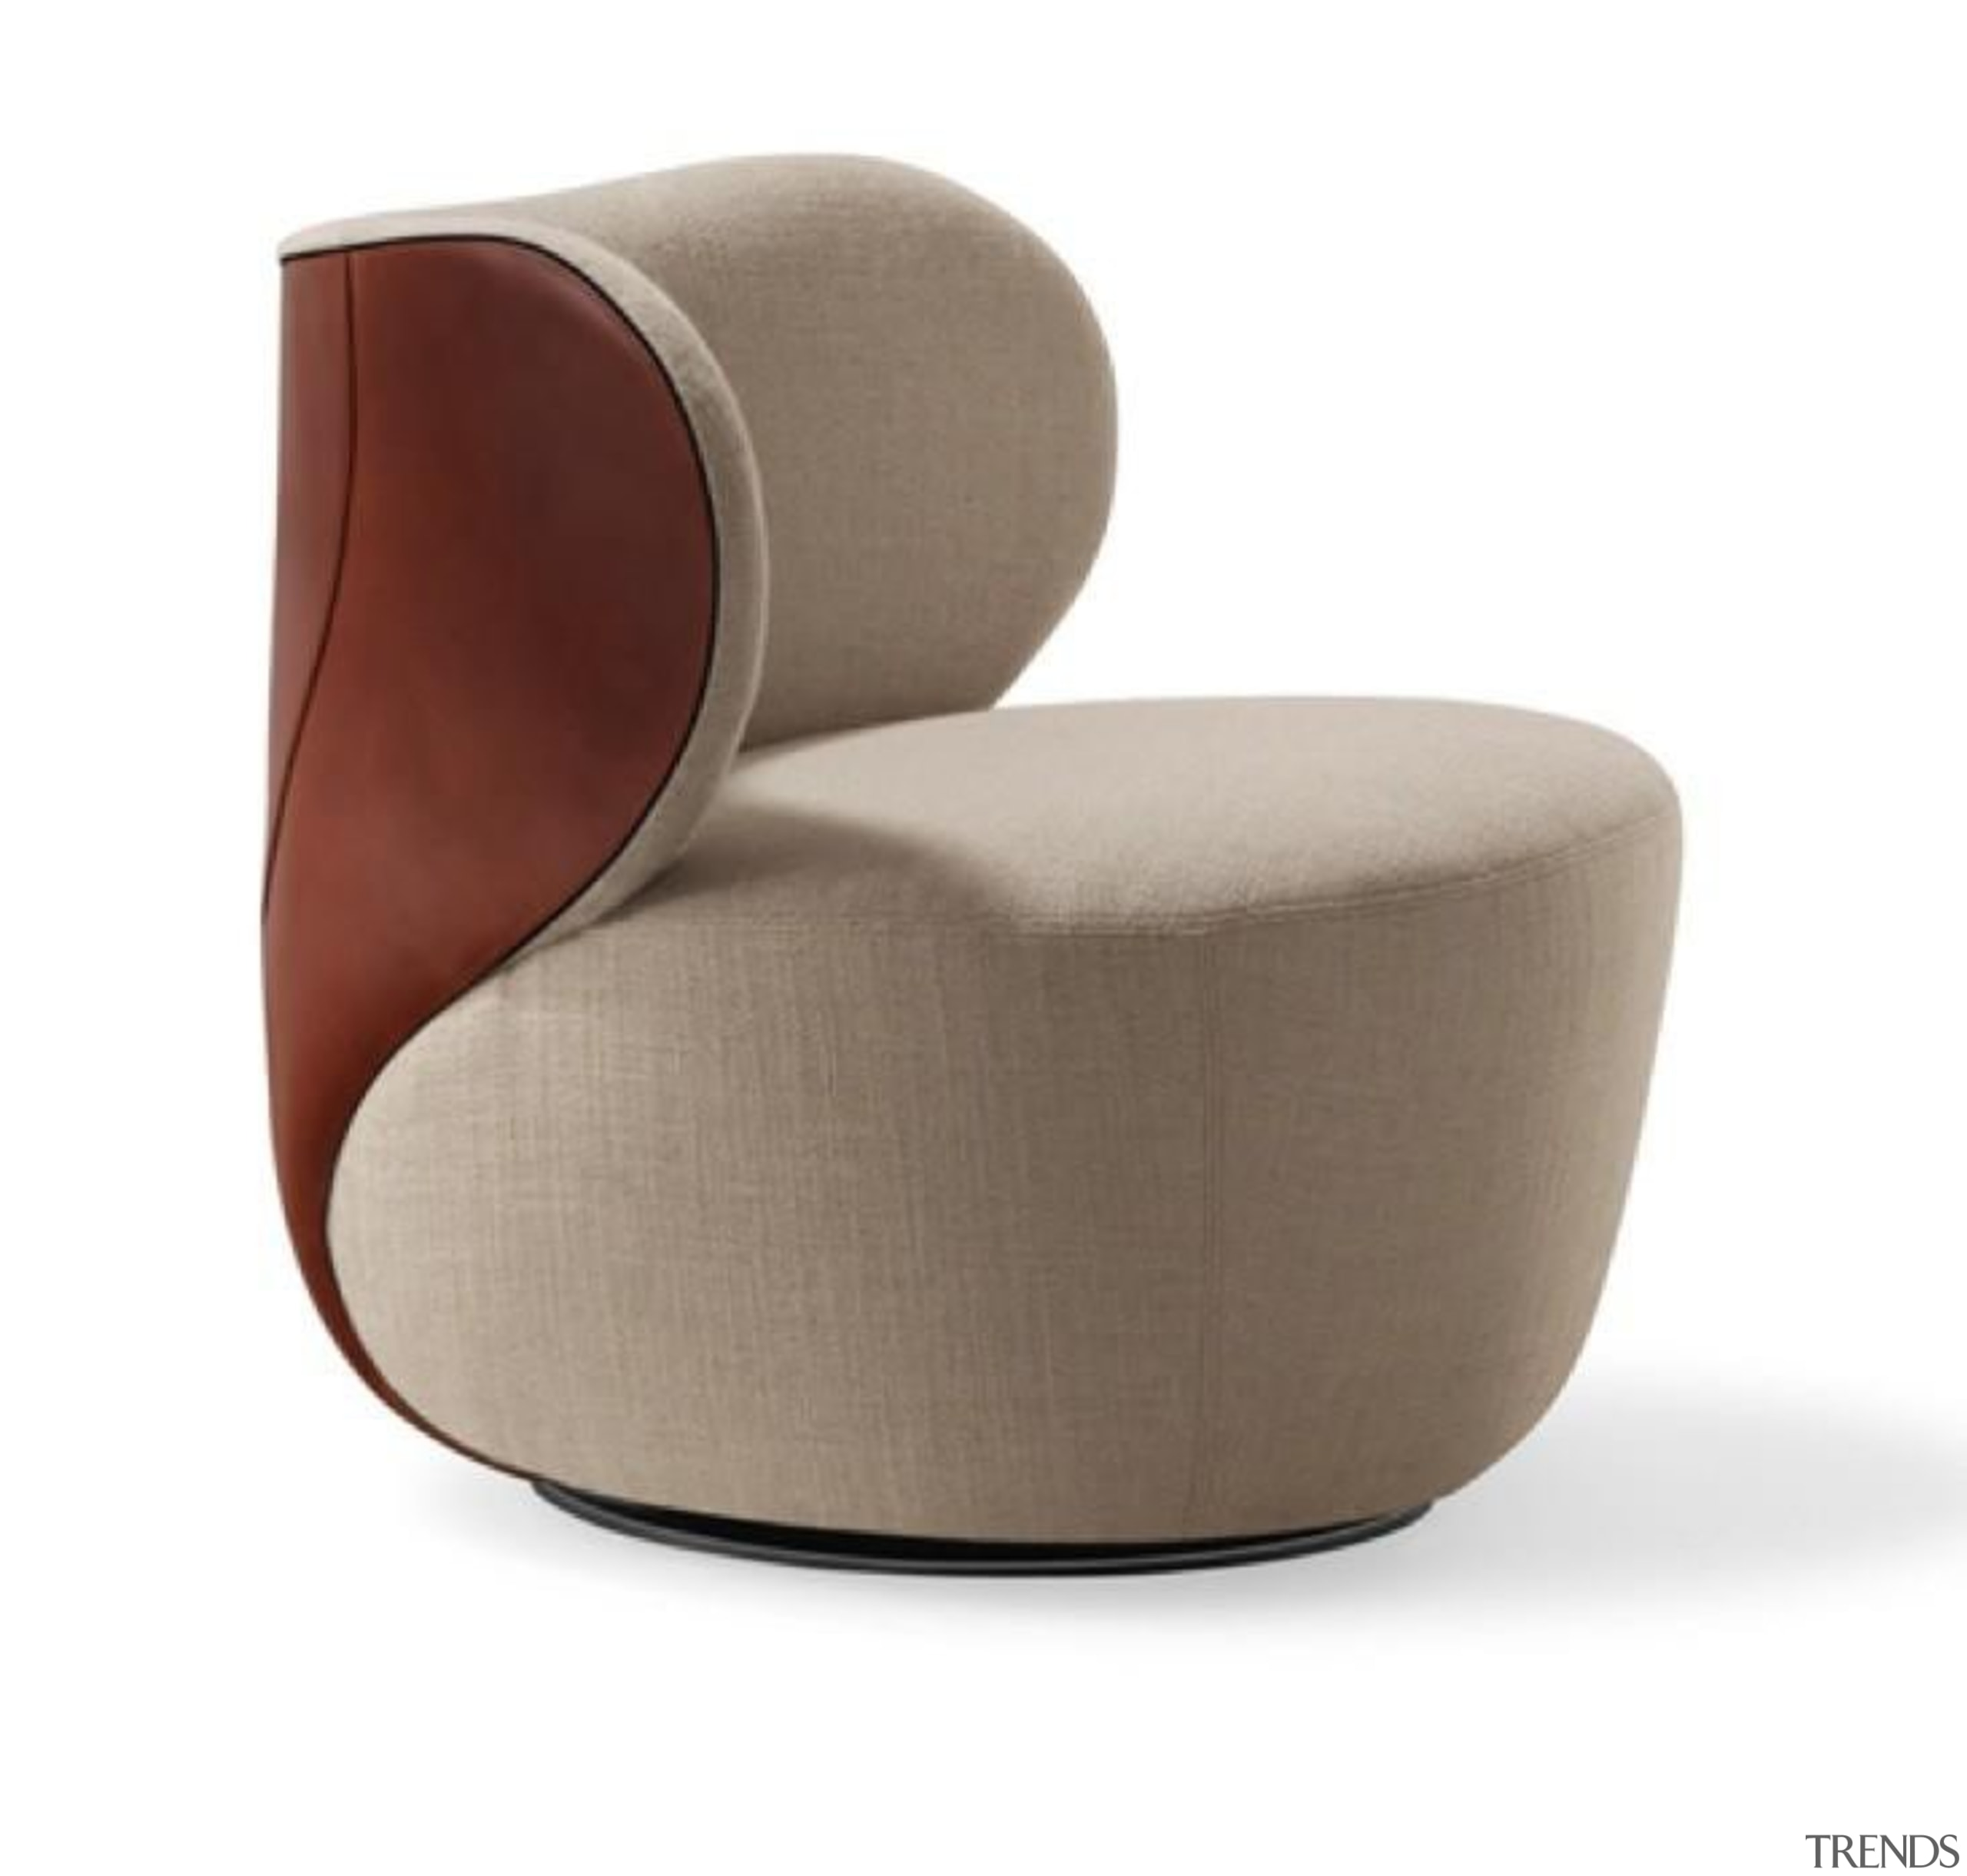 Walter Knoll- Bao Armchair Designed by EOOS. A angle, chair, furniture, product, product design, white